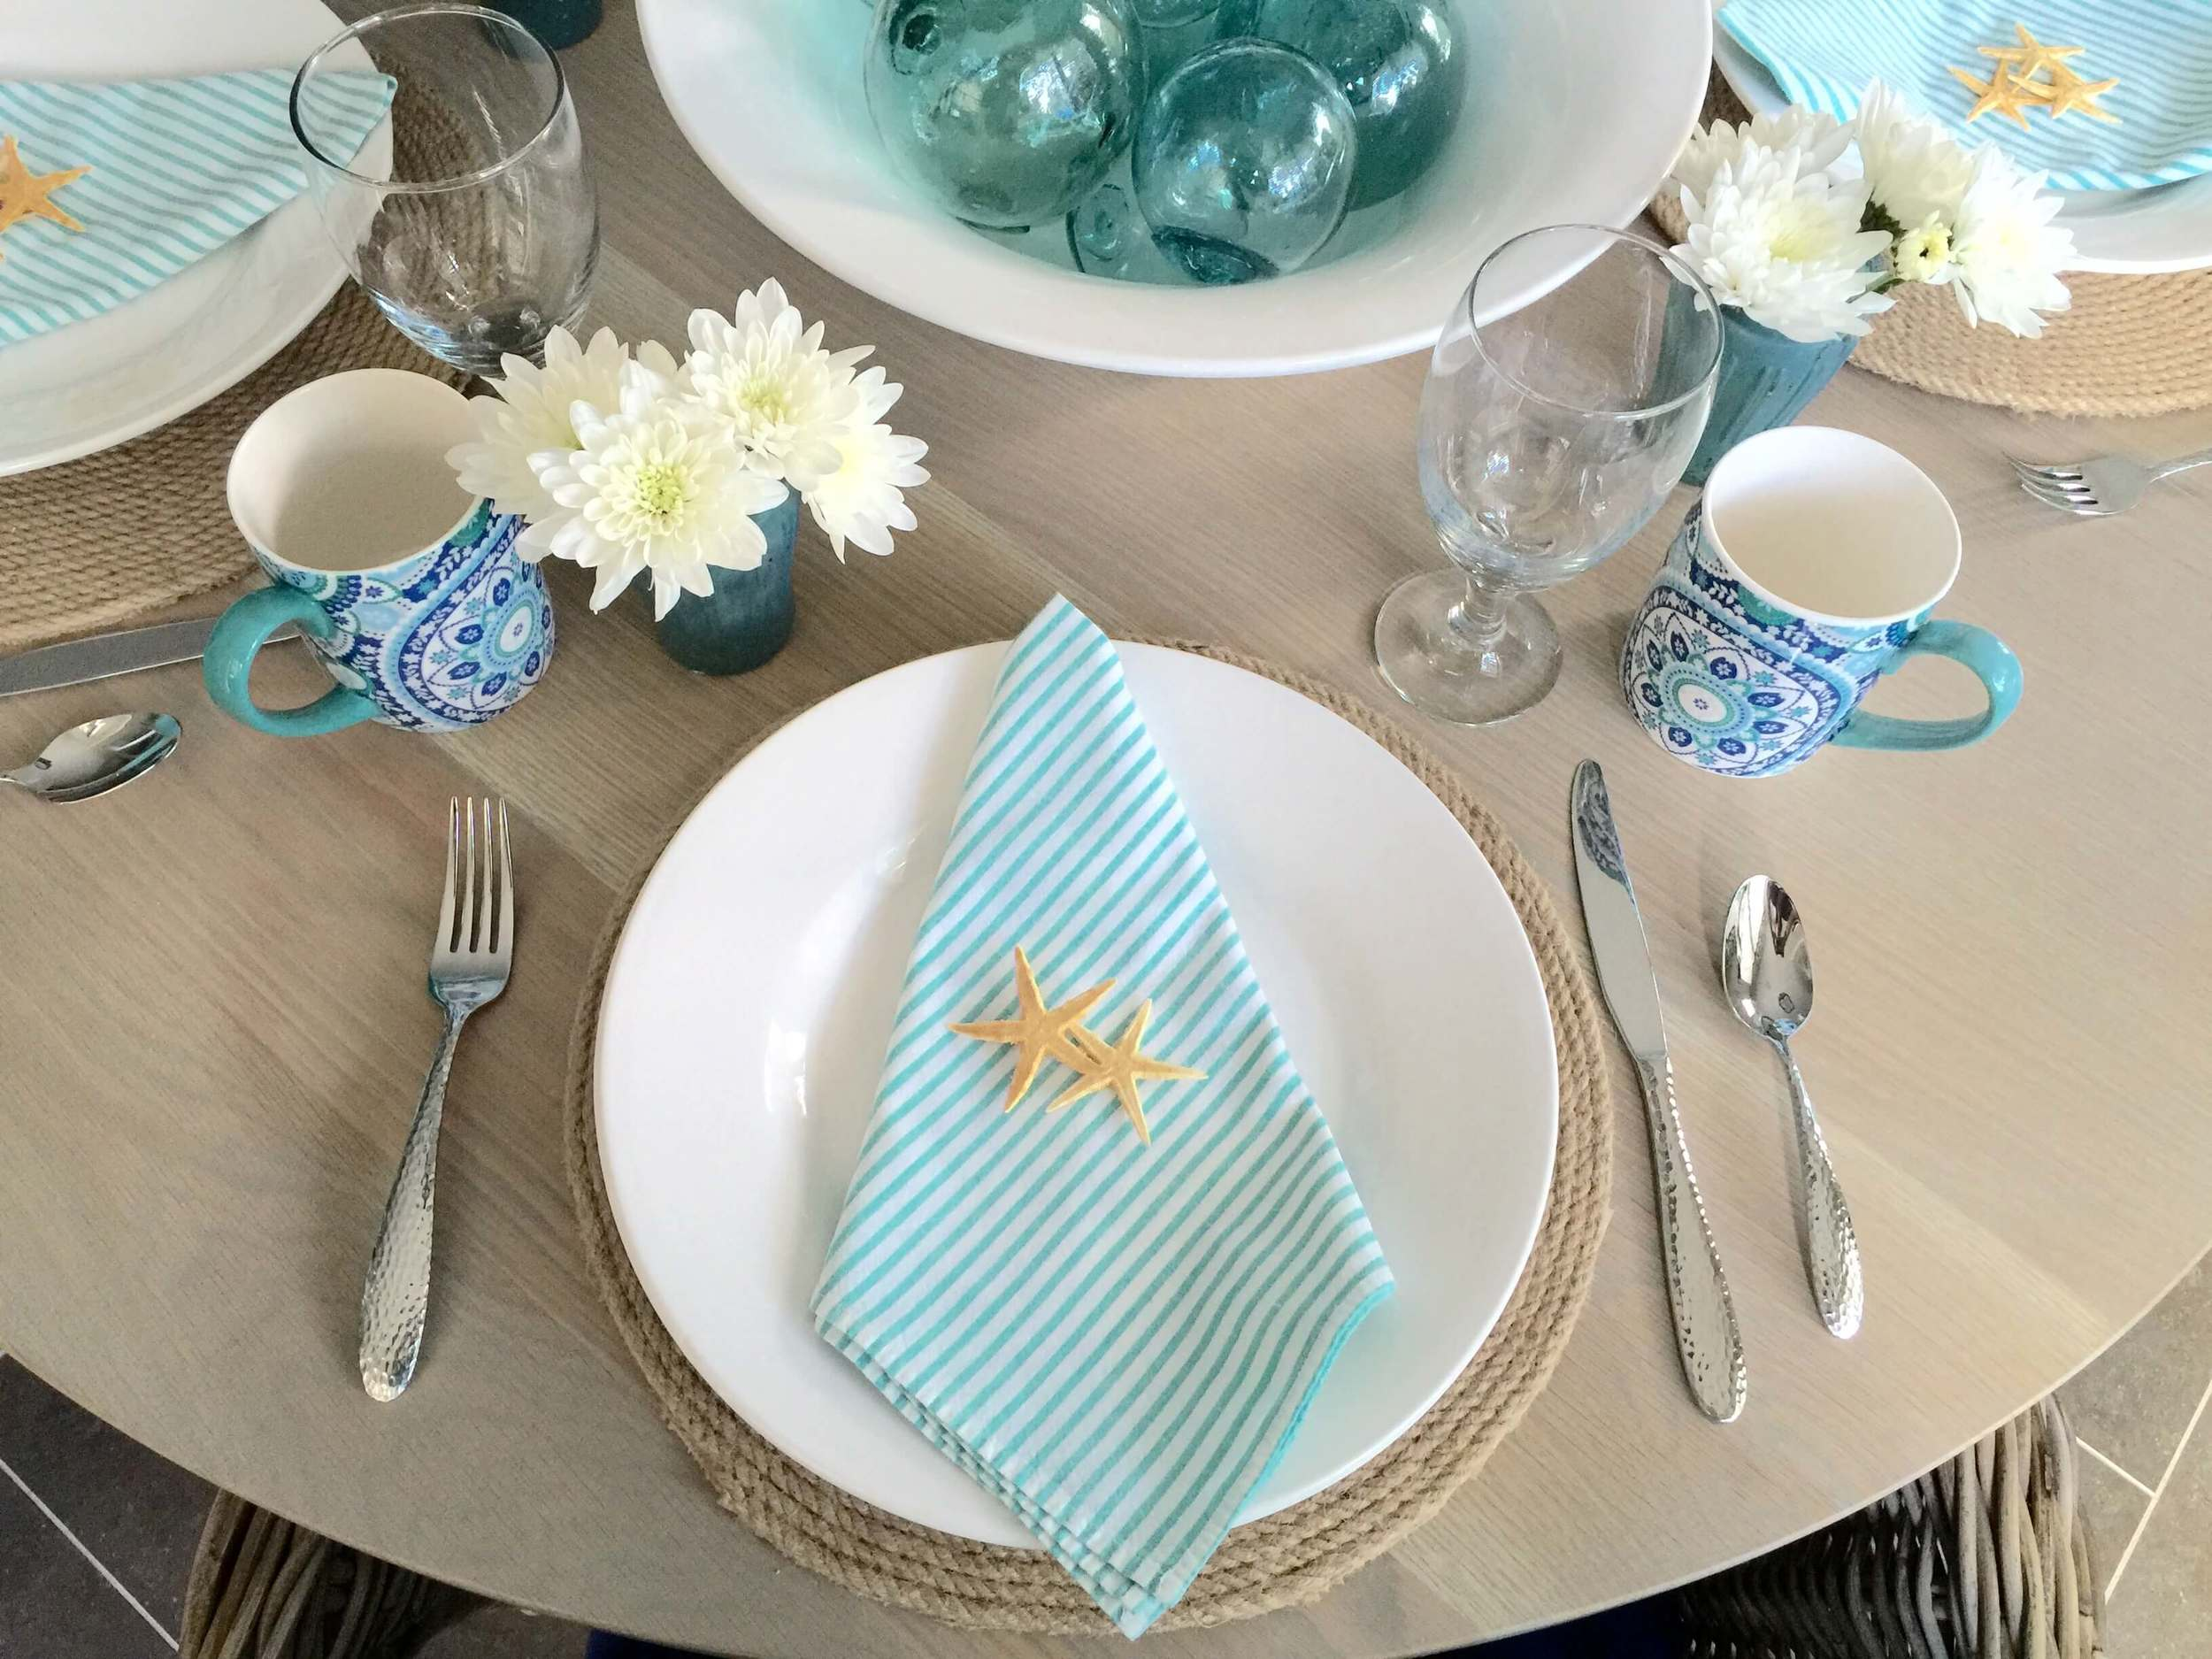 Coastal tabletop | Interior Designer: Carla Aston